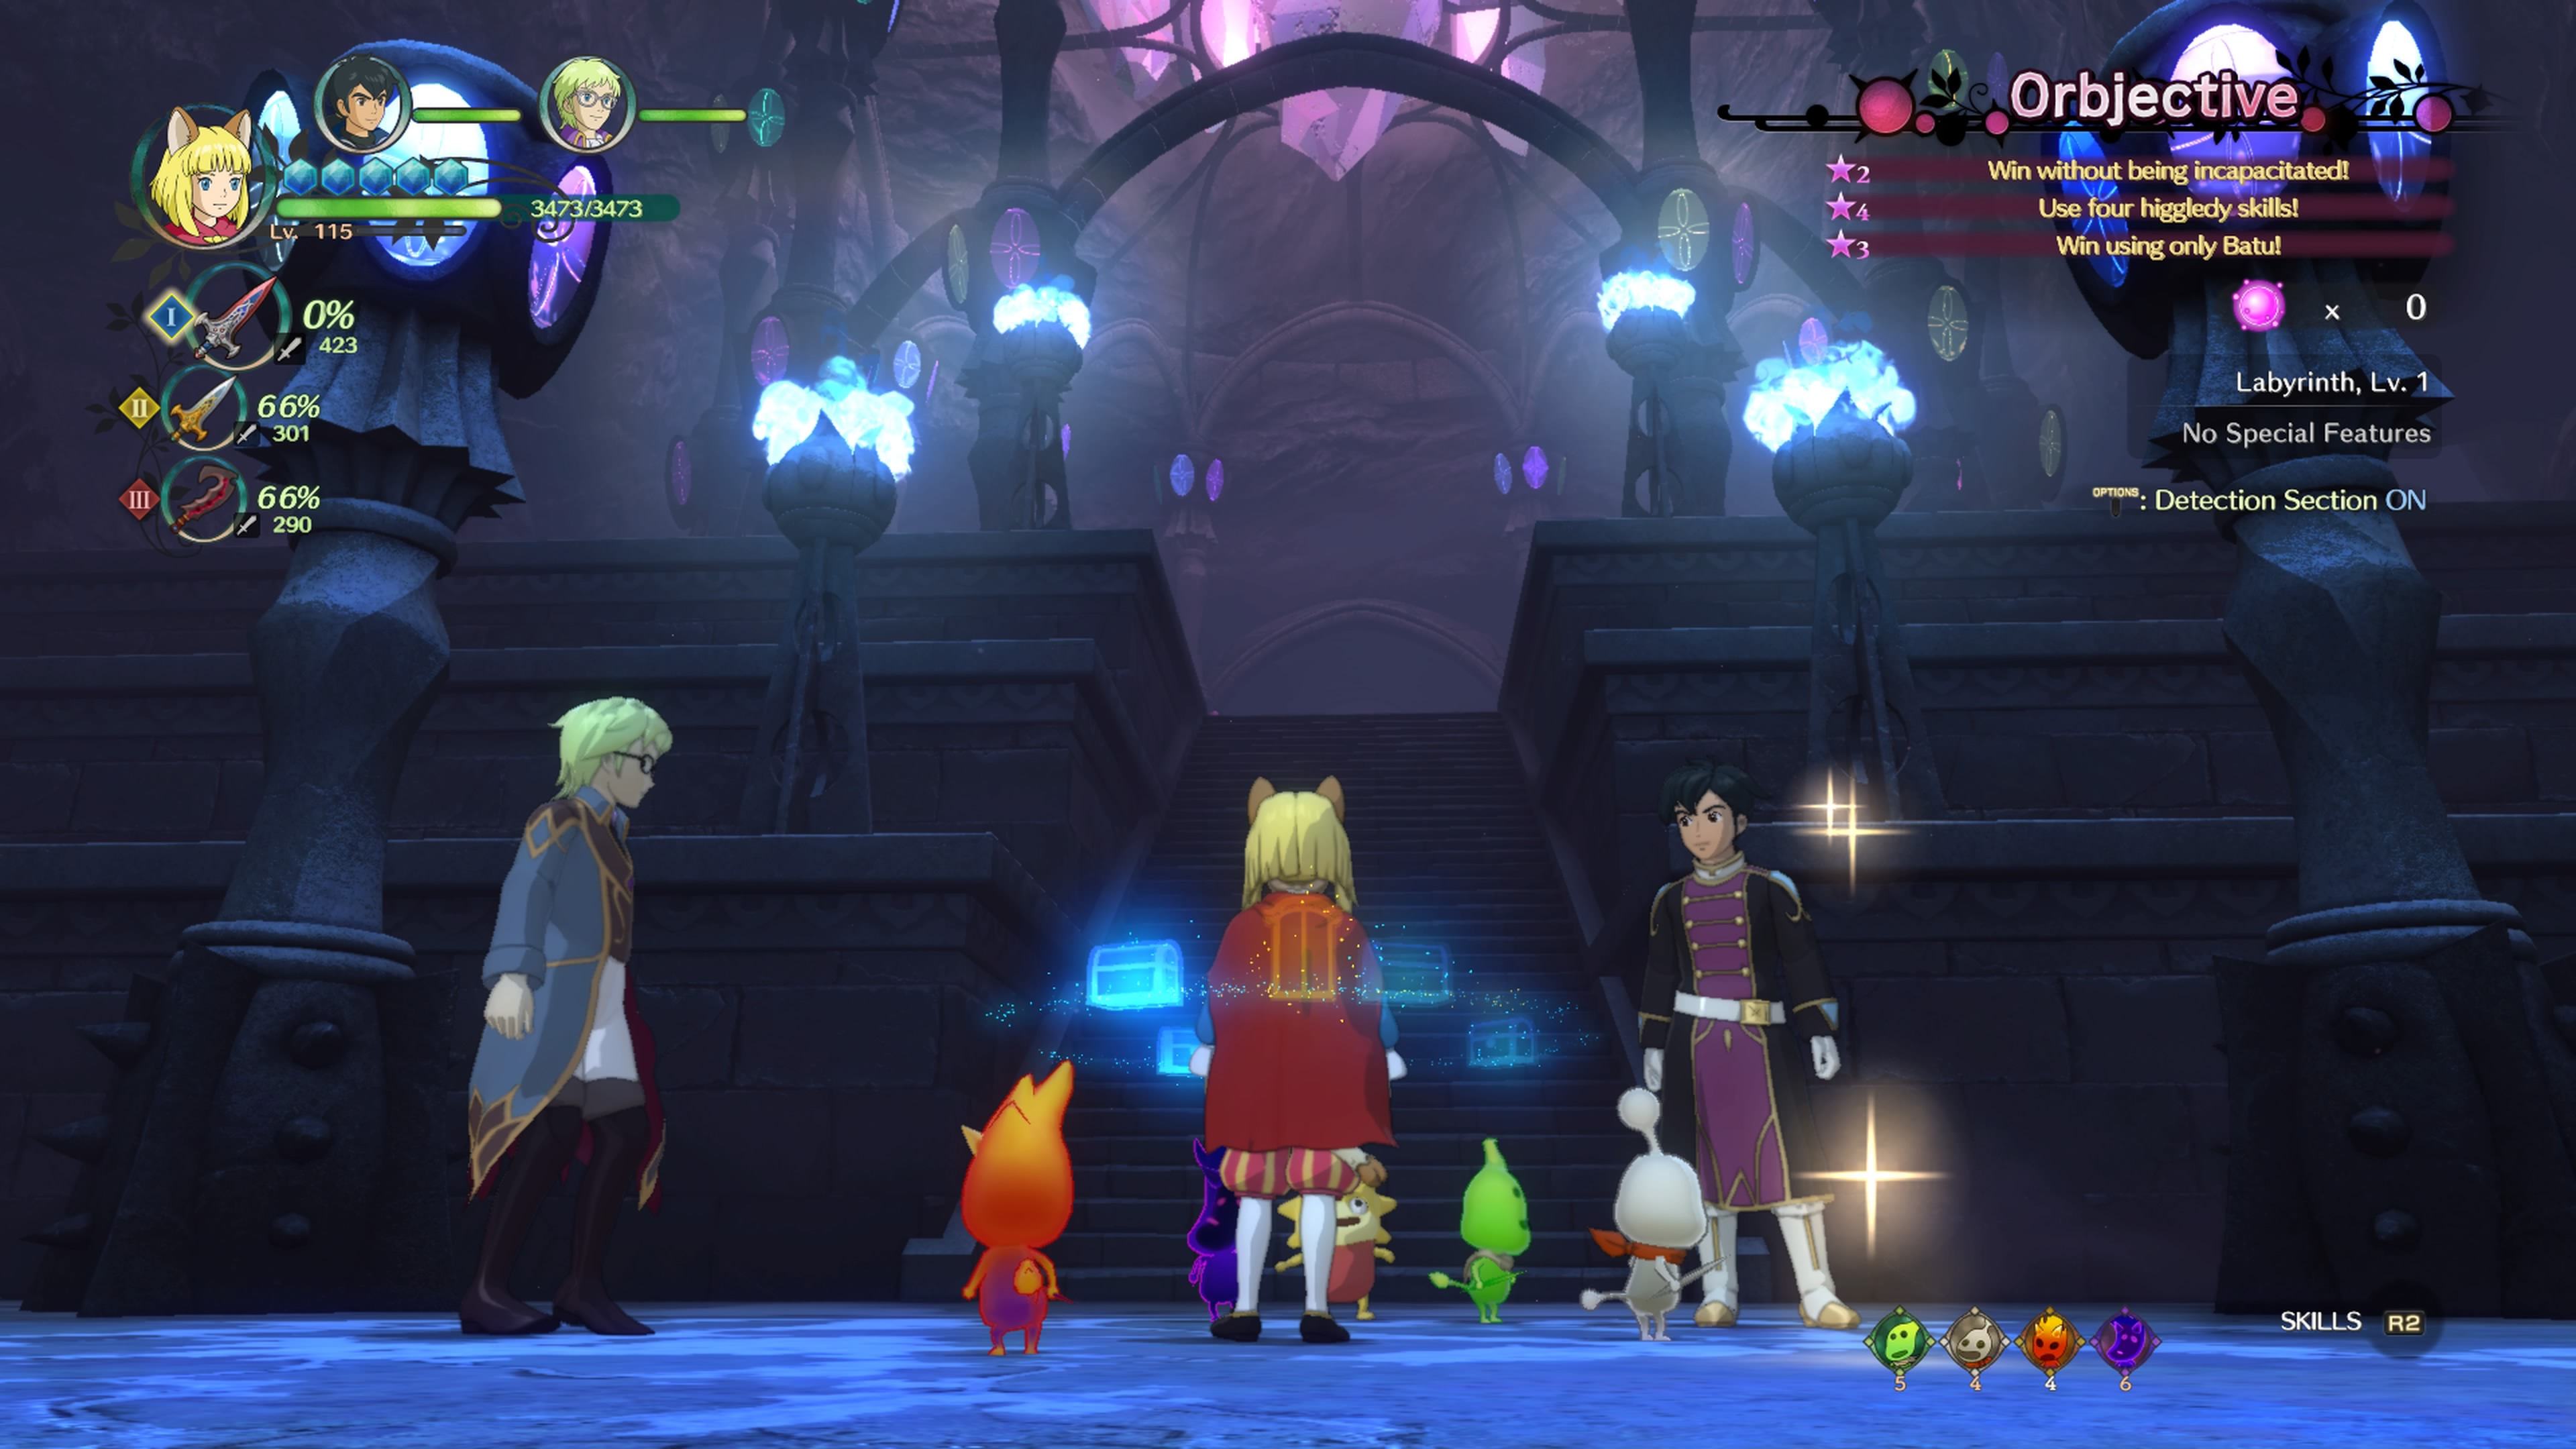 The Lair of the Lost Lord - Ni no Kuni 2: Revenant Kingdom 4K, DLC